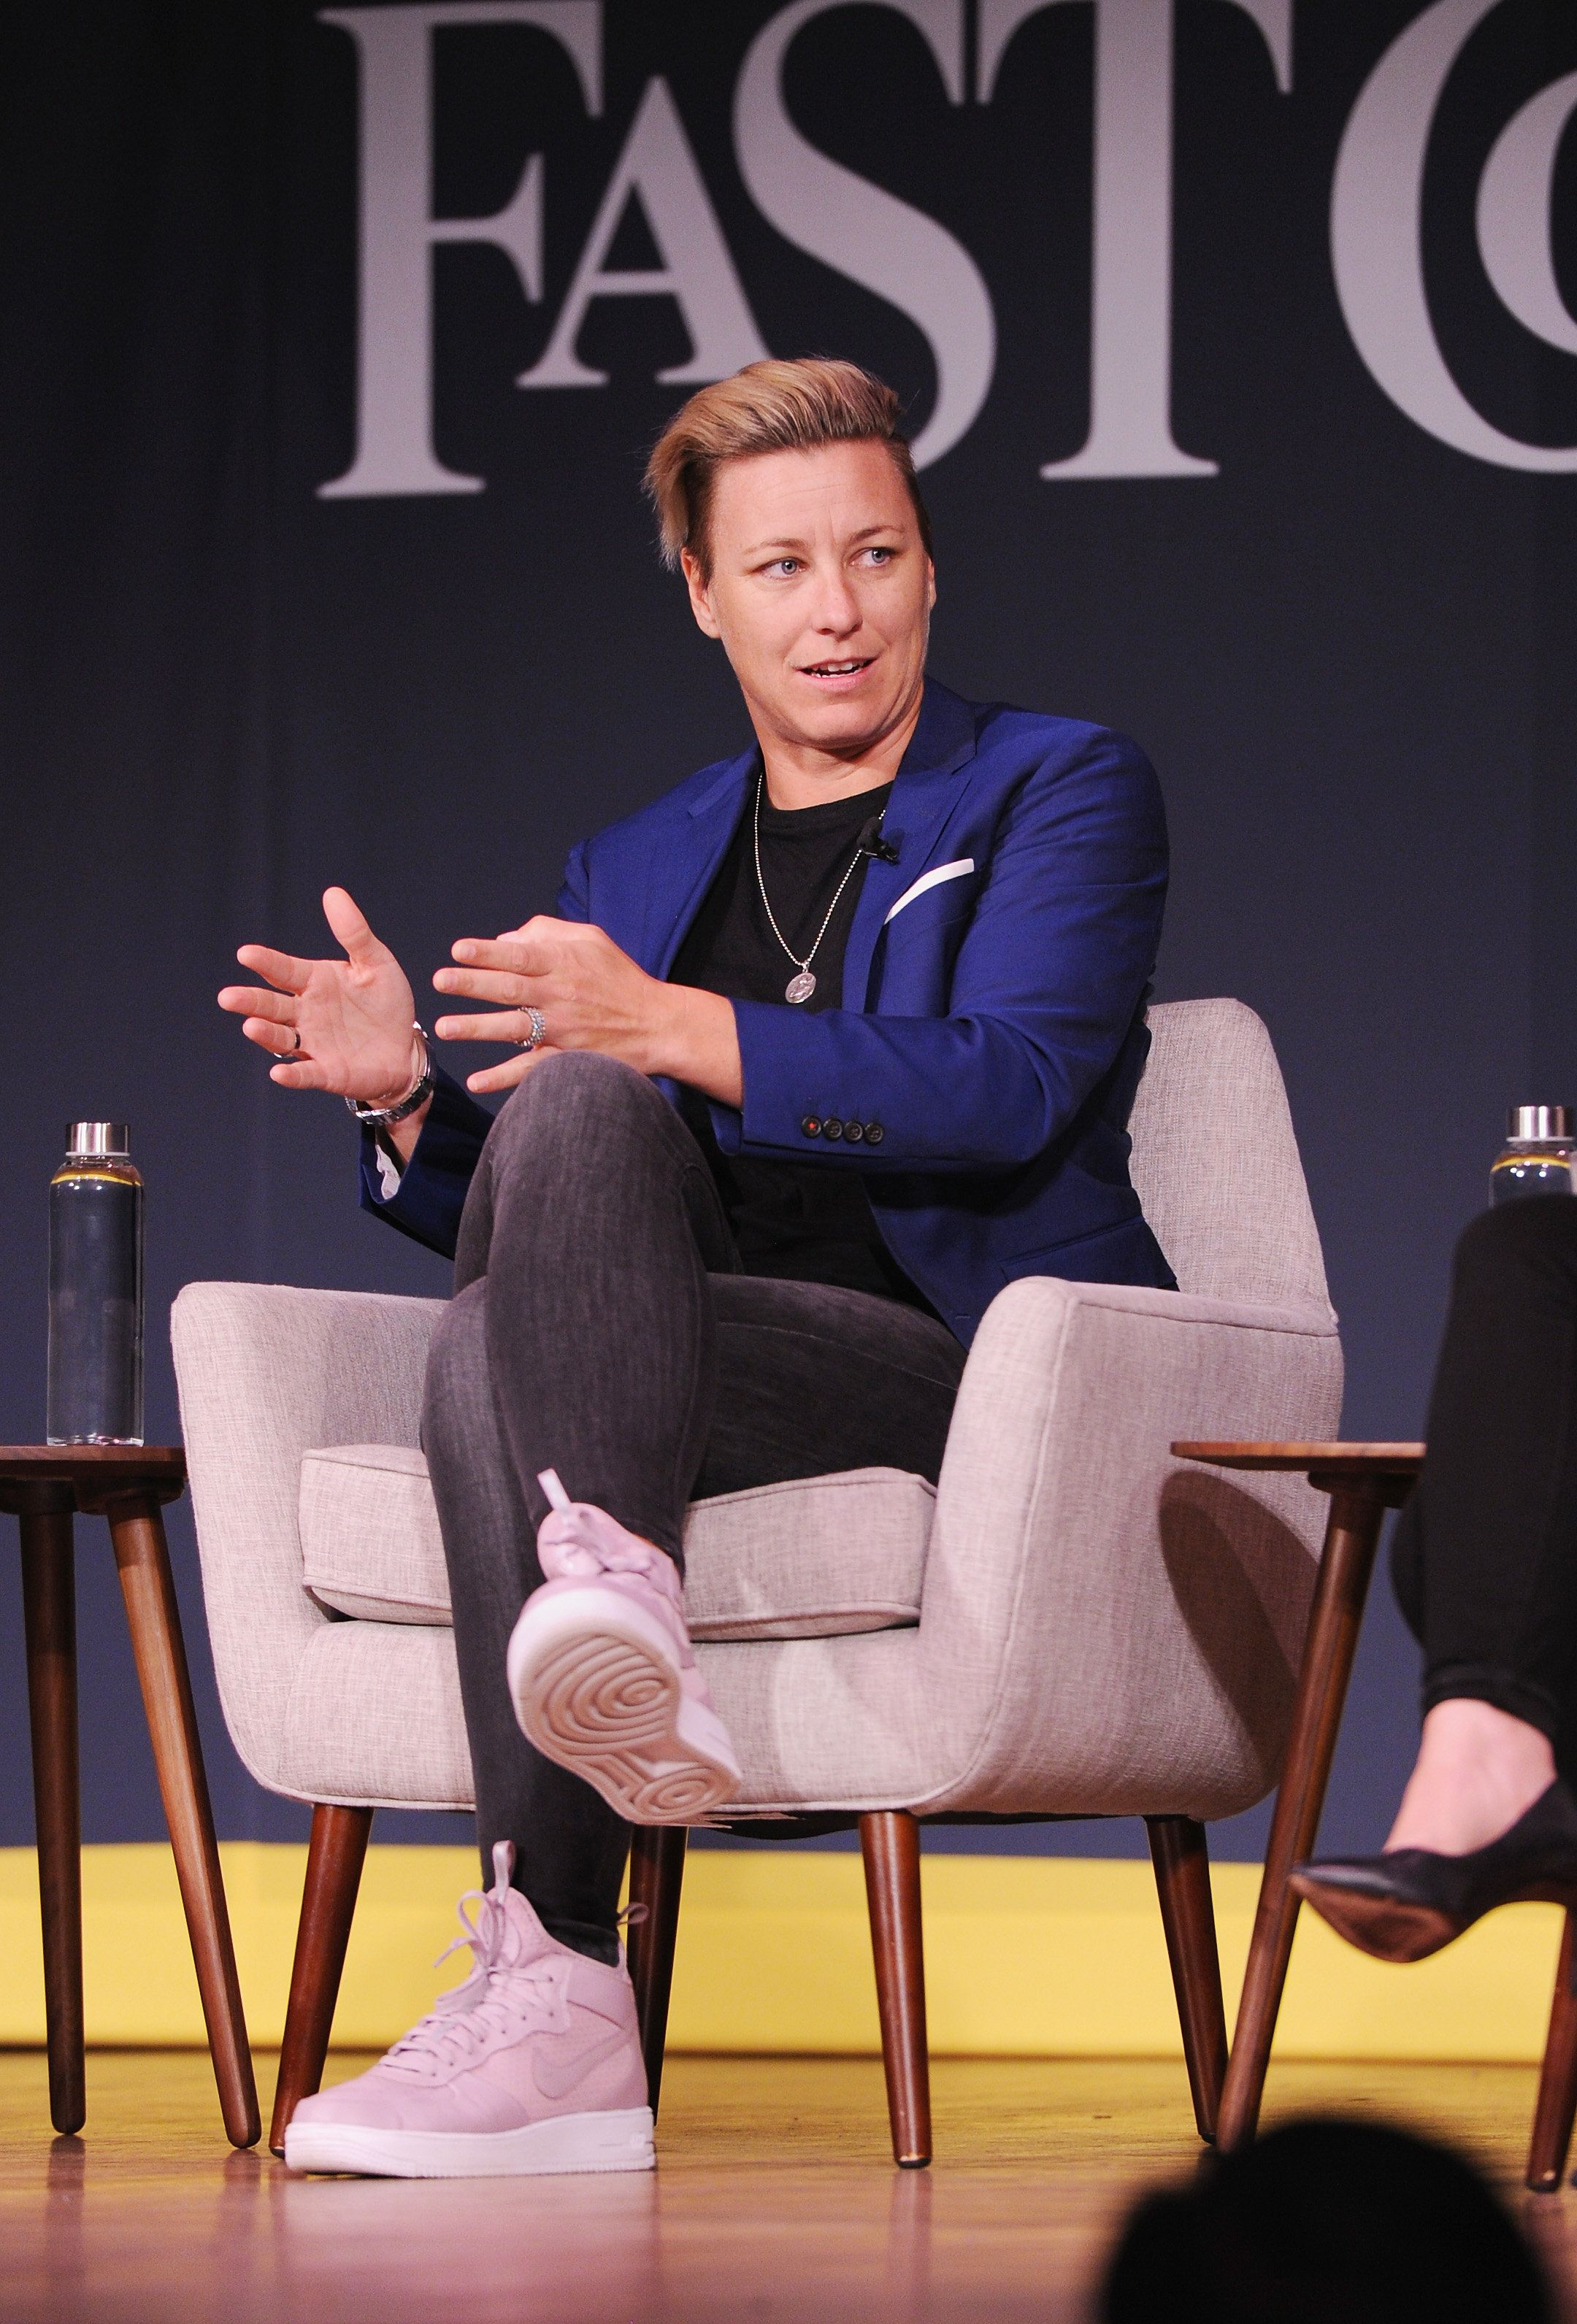 NEW YORK, NY - OCTOBER 26:  Soccer player and Activist Abby Wambach speaks onstage for Soccer Star and Activist Abby Wambach and Nike's Hannah Jones an Challenging The Status Quo at 92nd Street Y on October 26, 2017 in New York City.  (Photo by Craig Barritt/Getty Images for Fast Company)